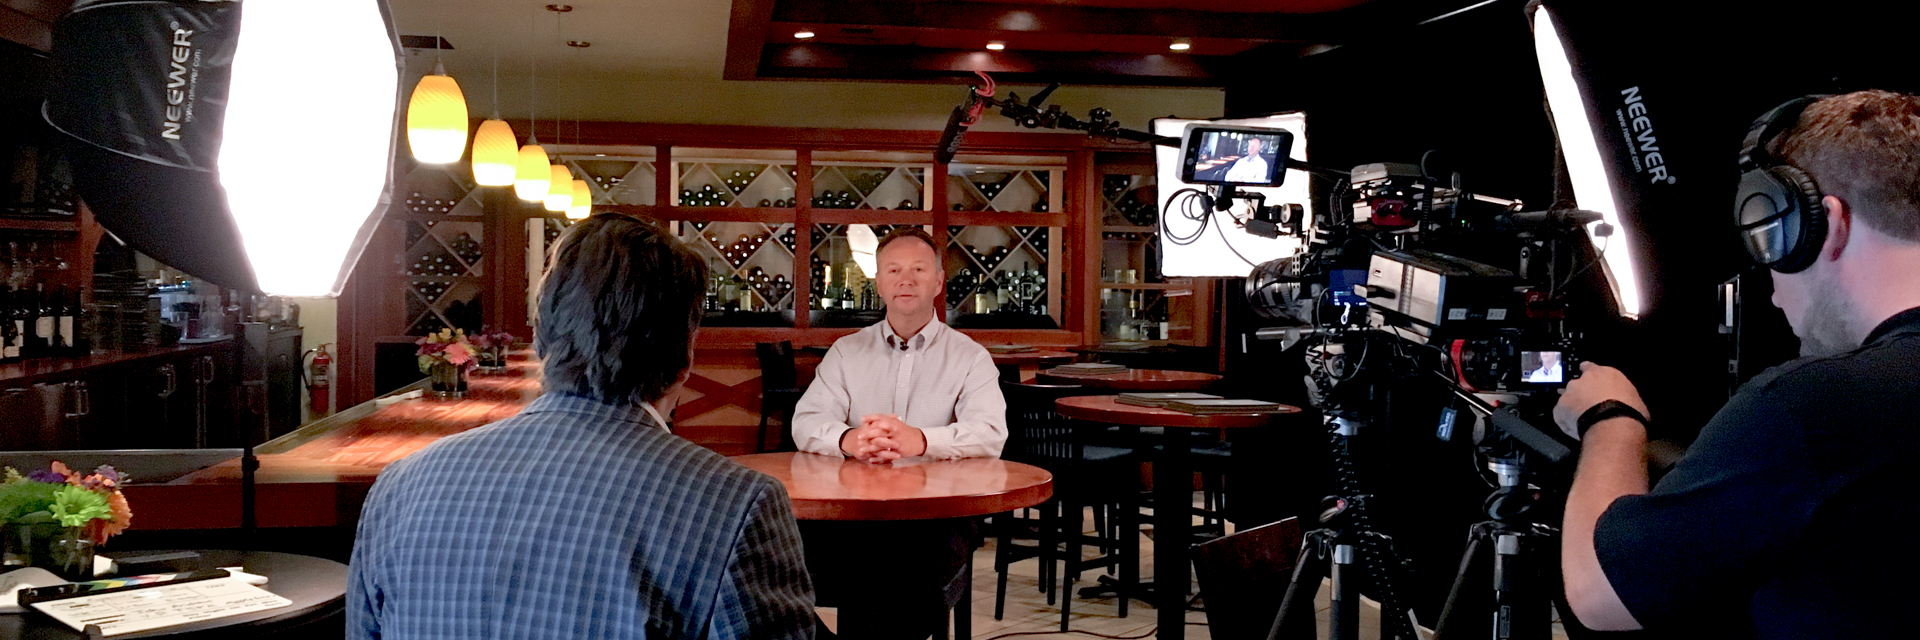 A behind the scenes look at DTX Media, a Dallas Interview Company filming. A man is sitting at a table for interviews with video lights and camcorders pointing at him.